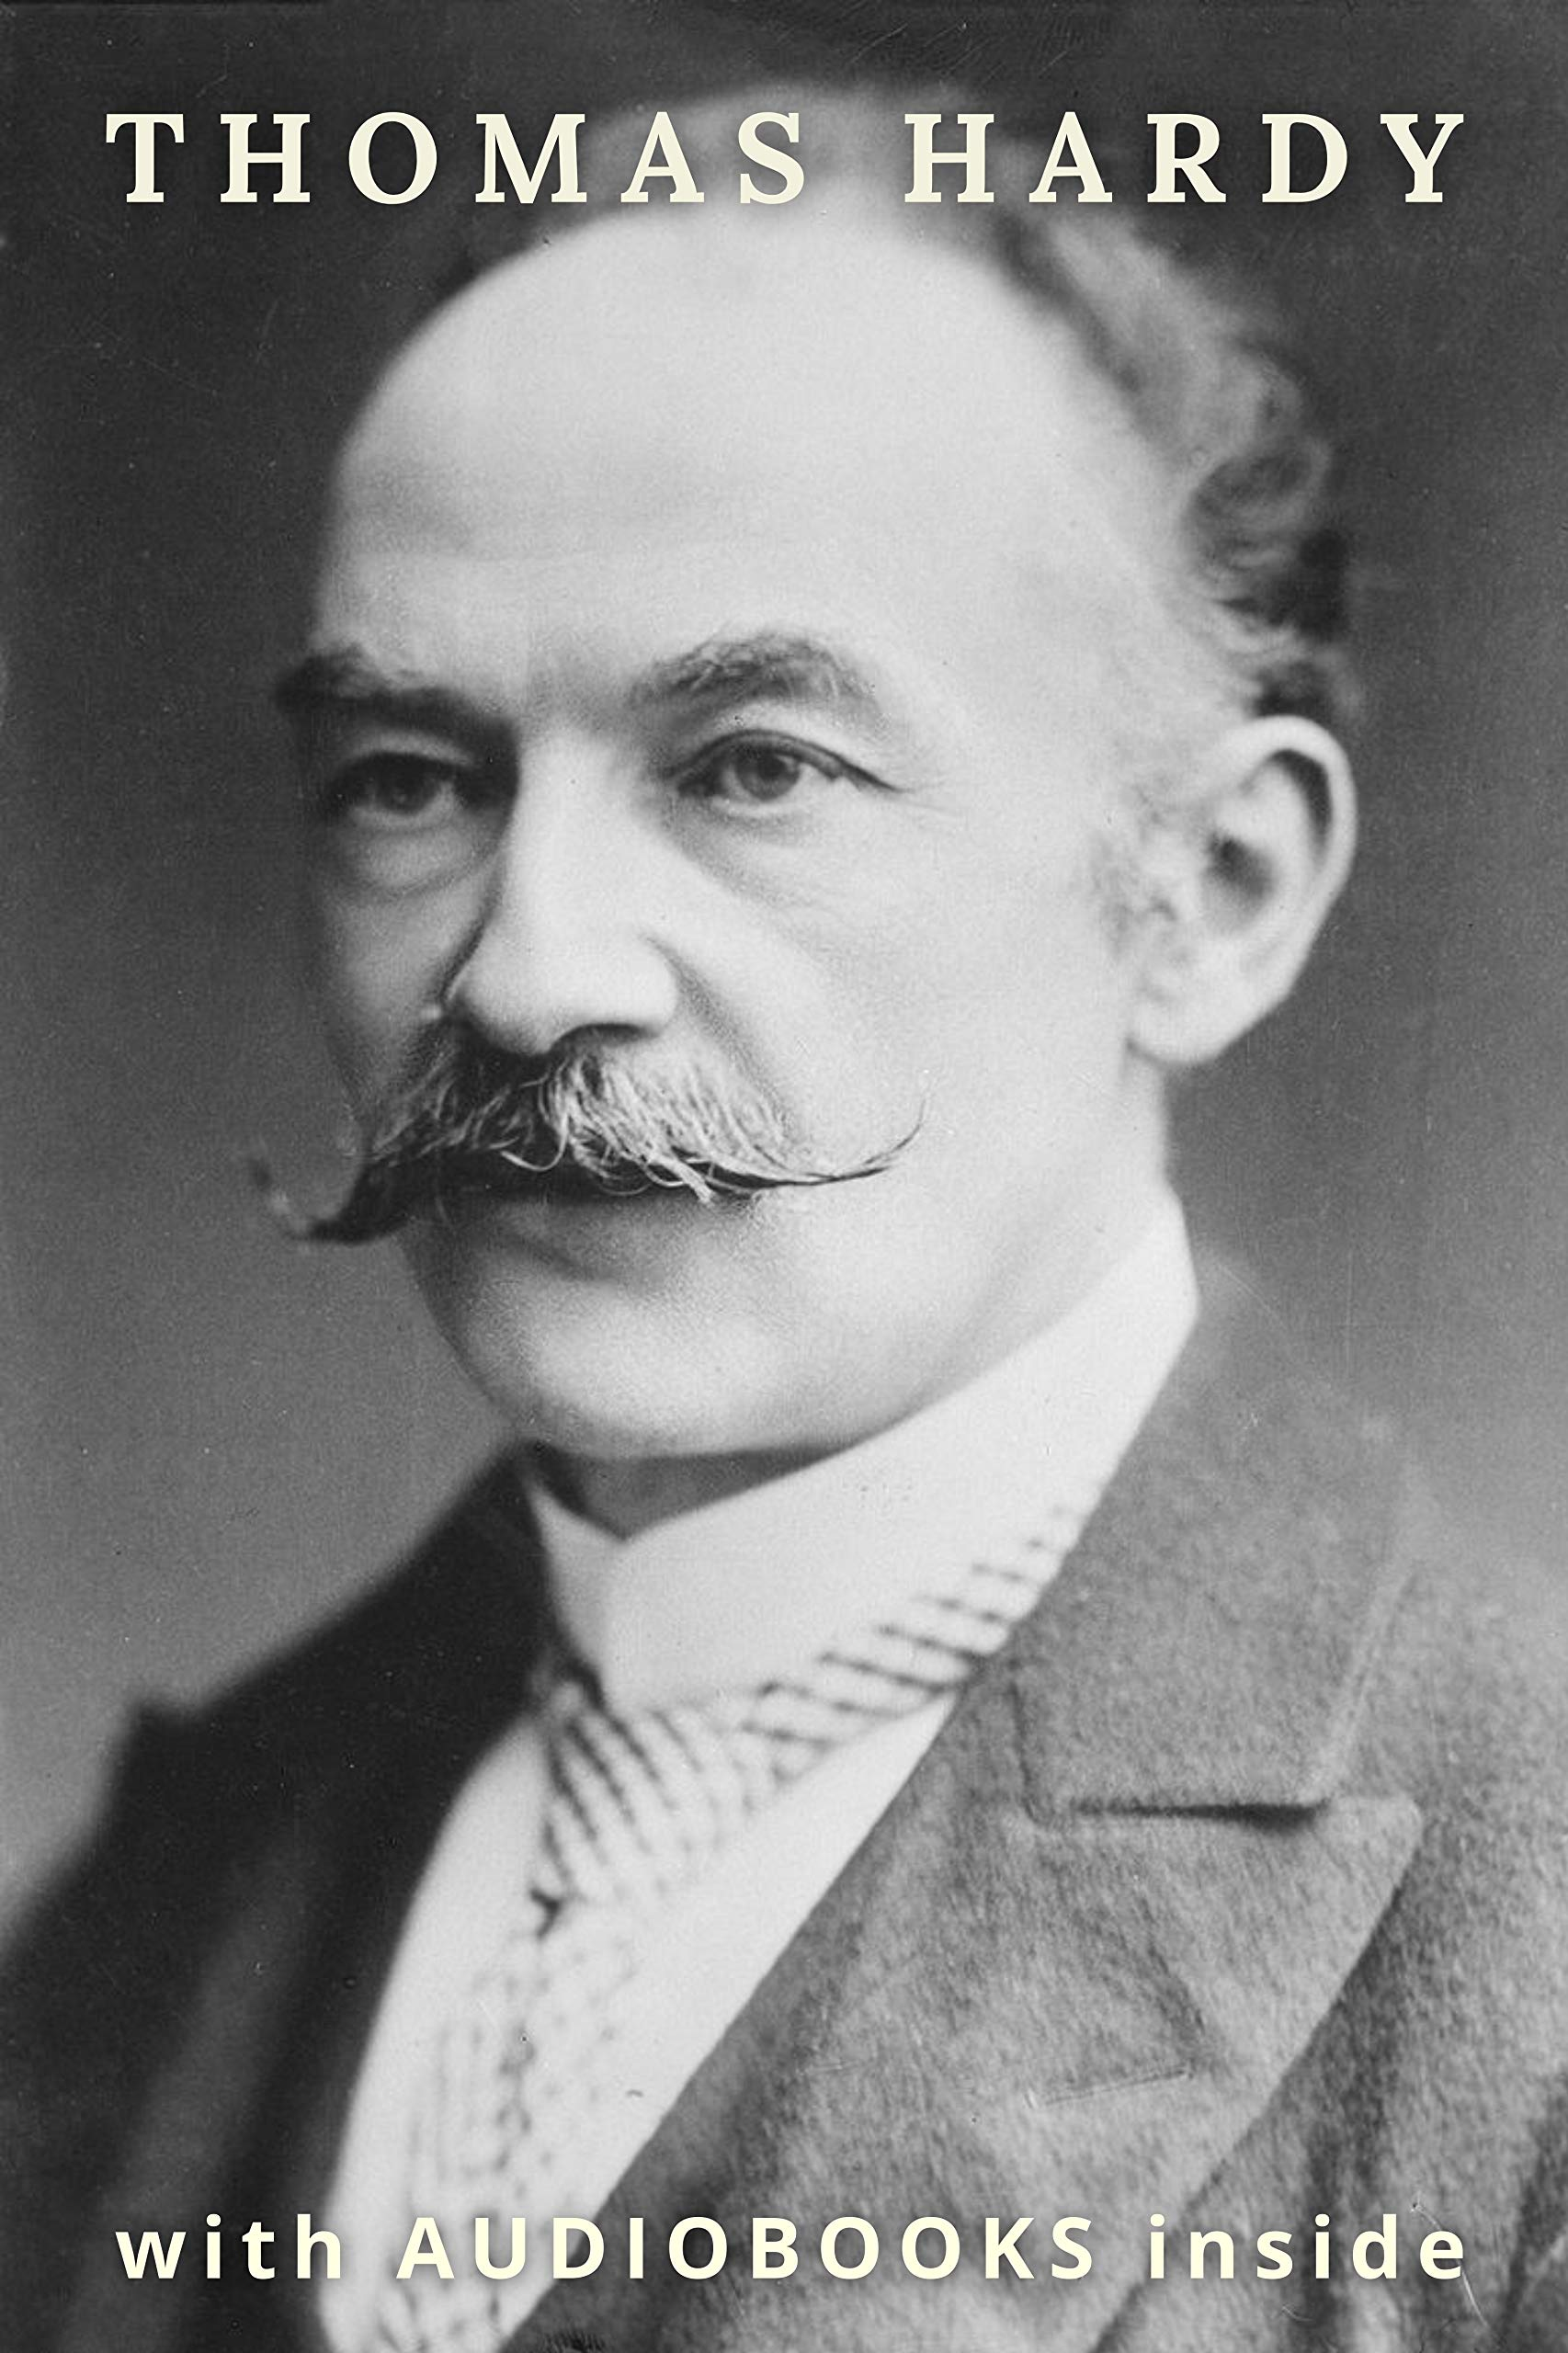 Thomas Hardy (18 books): Tess of the d'Urbervilles, Far from the Madding Crowd, Jude the Obscure, The Return of the Native, Wessex Poems and many more - WITH AUDIOBOOKS